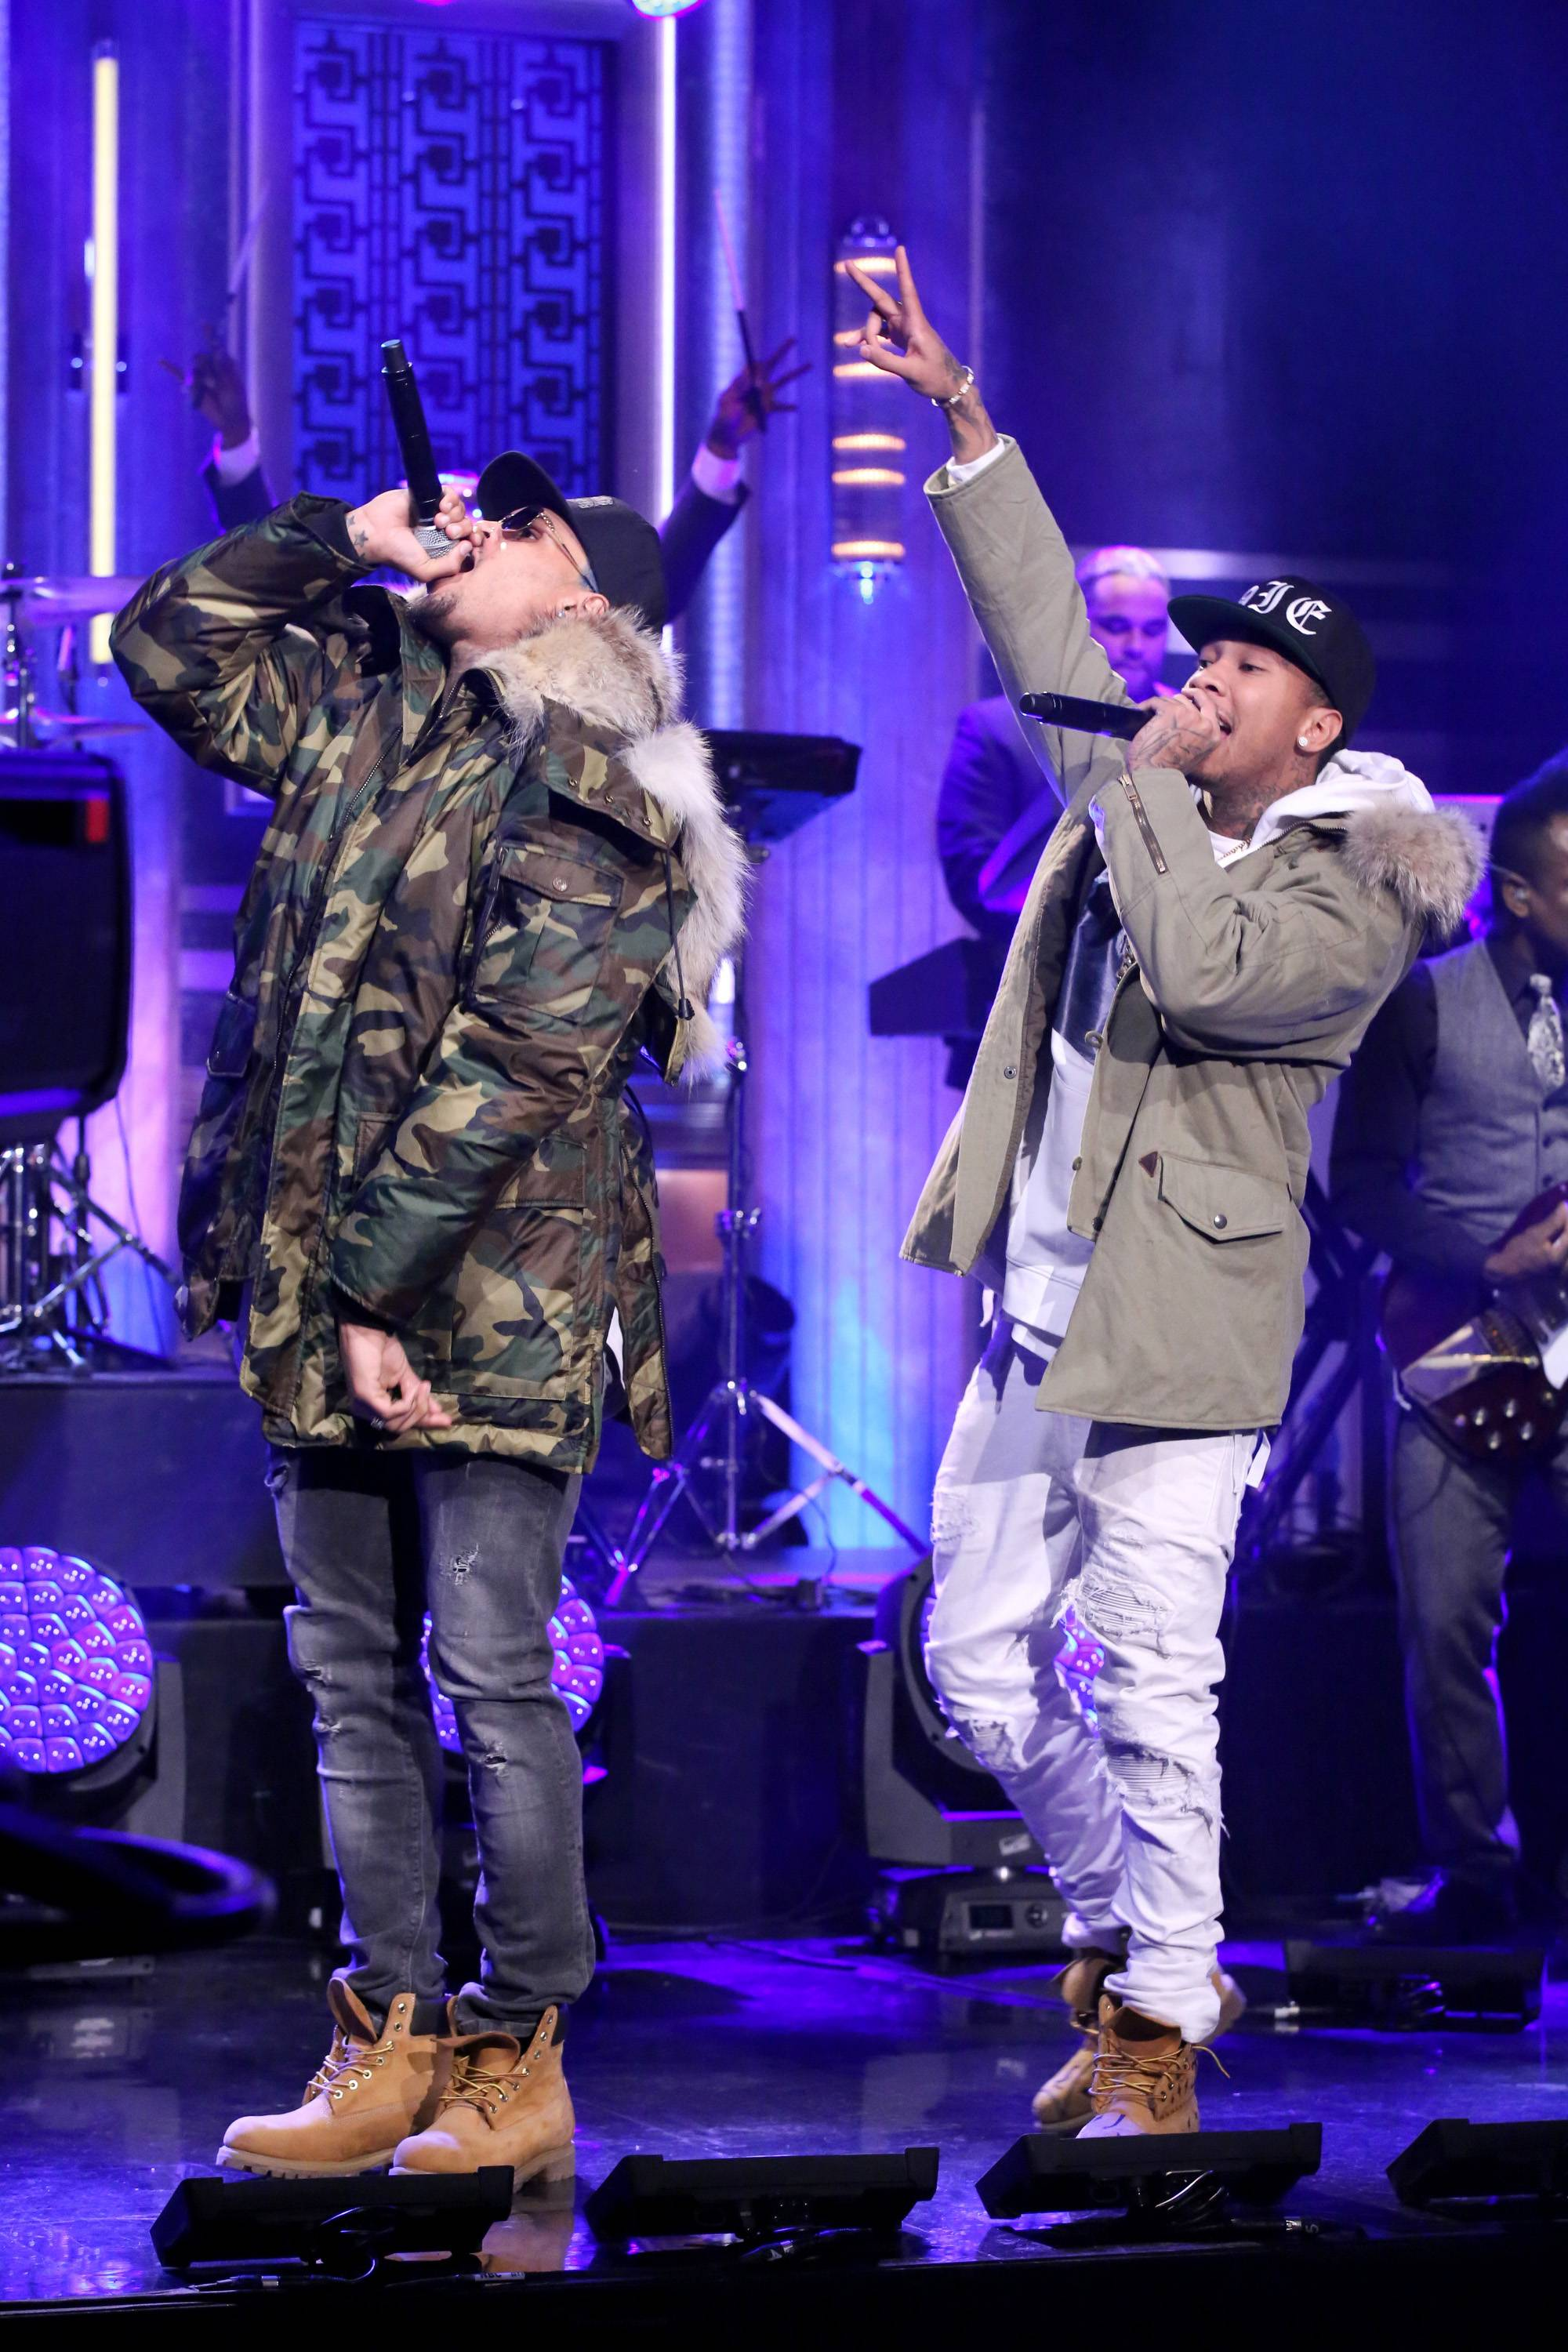 """'Banjo' - It's twerk season as DJ Mustard lays the backdrop for Brown and Tyga to close out their sexcapades. With one thing on his mind, C.B. praises the Lord for his blessings as he raps, """"Shorty got that a** / Baby girl it's nice to meet you /With these lights off, give a f**k about your features.""""(Photo: Douglas Gorenstein/NBC/NBCU Photo Bank via Getty Images)"""